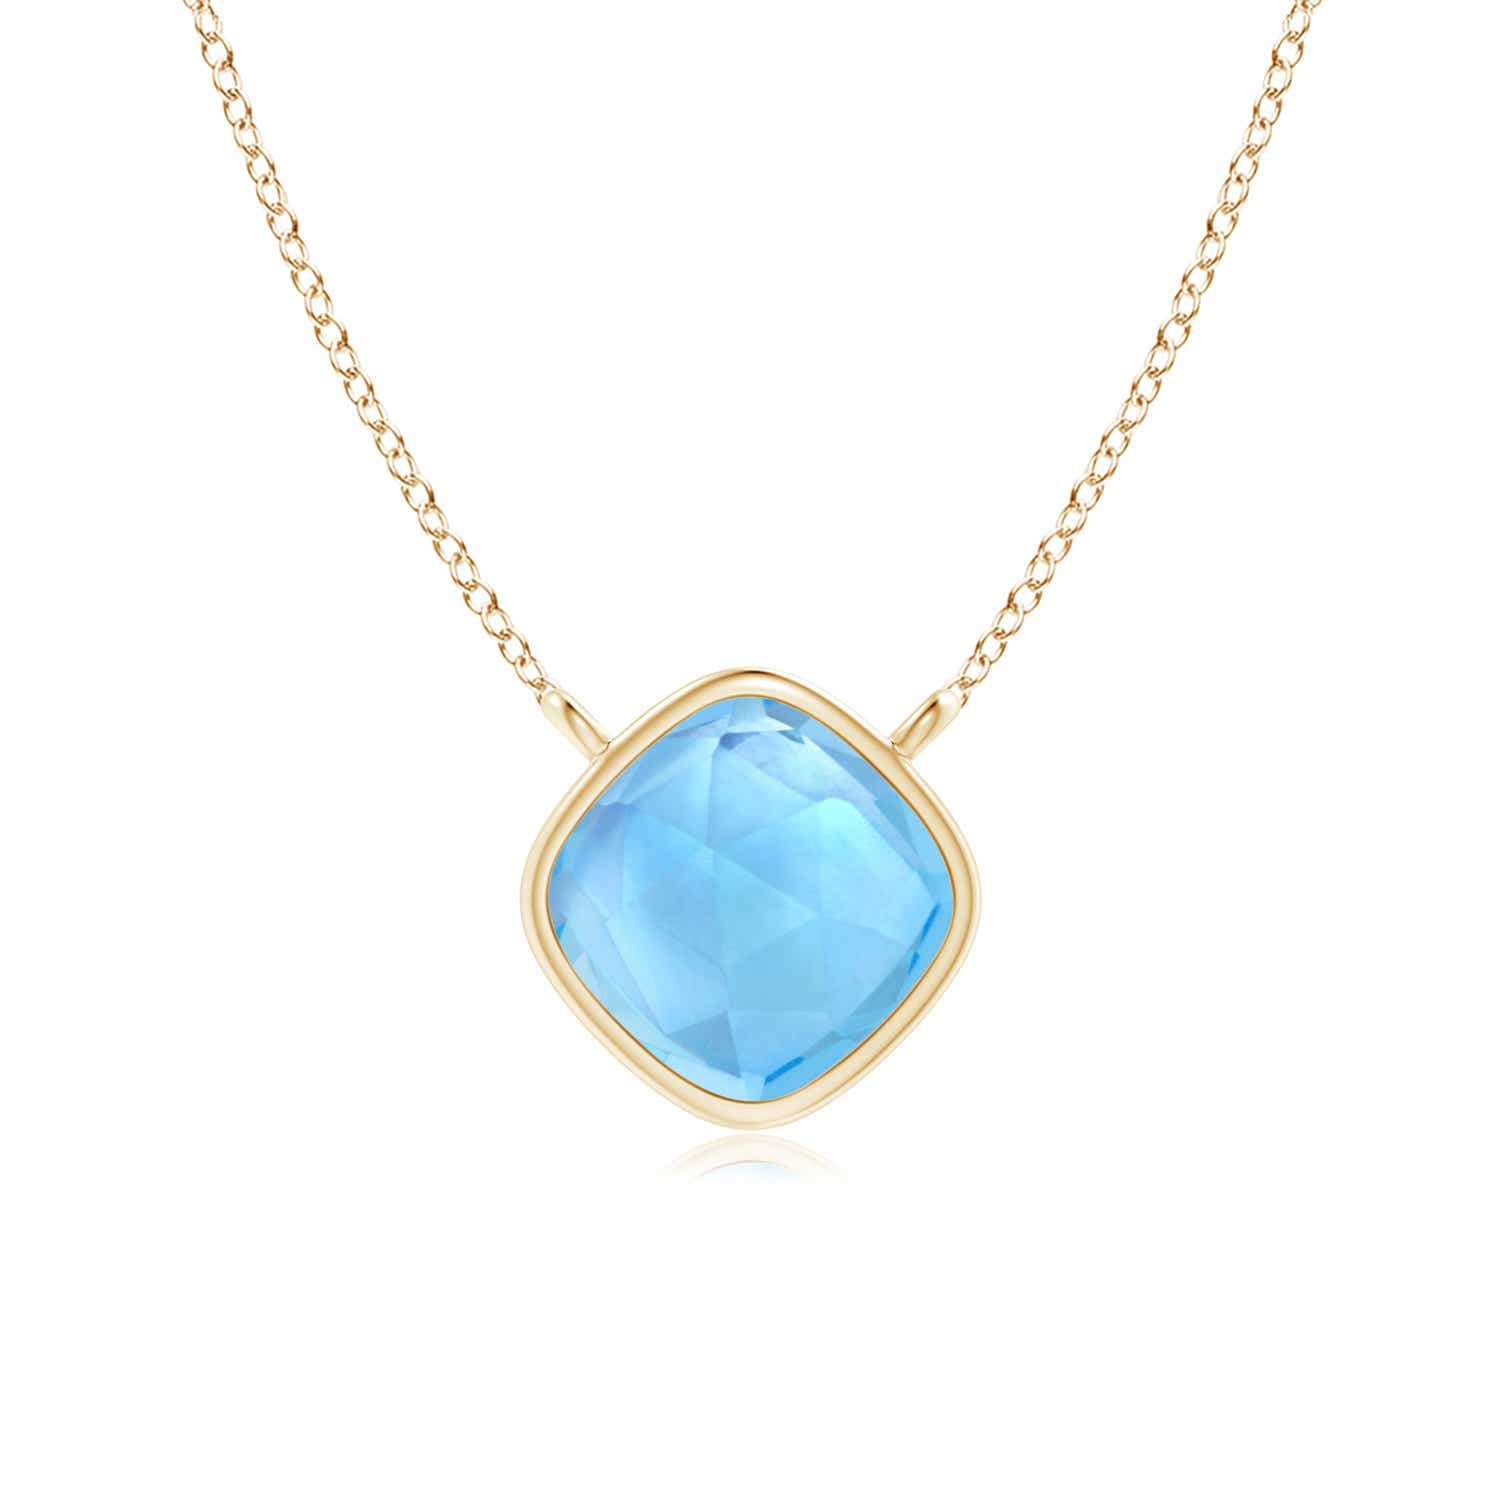 Angara Swiss Blue Topaz Necklace Pendant in Yellow Gold LAx8JH0